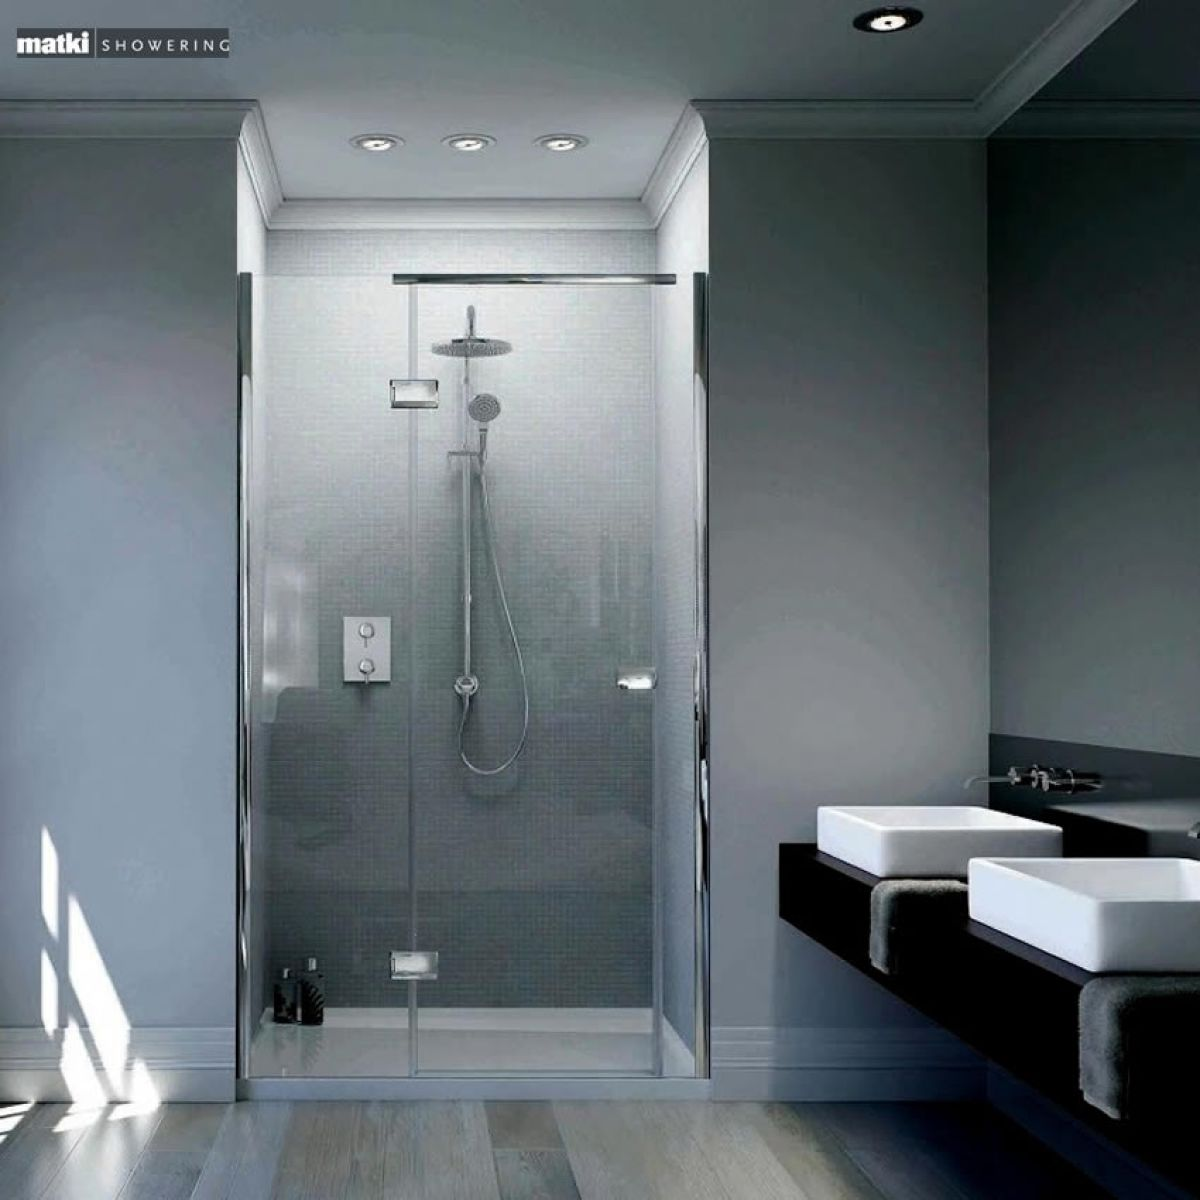 Pin Shower Without Door Licious Showers Without Doors With Shelves on ...